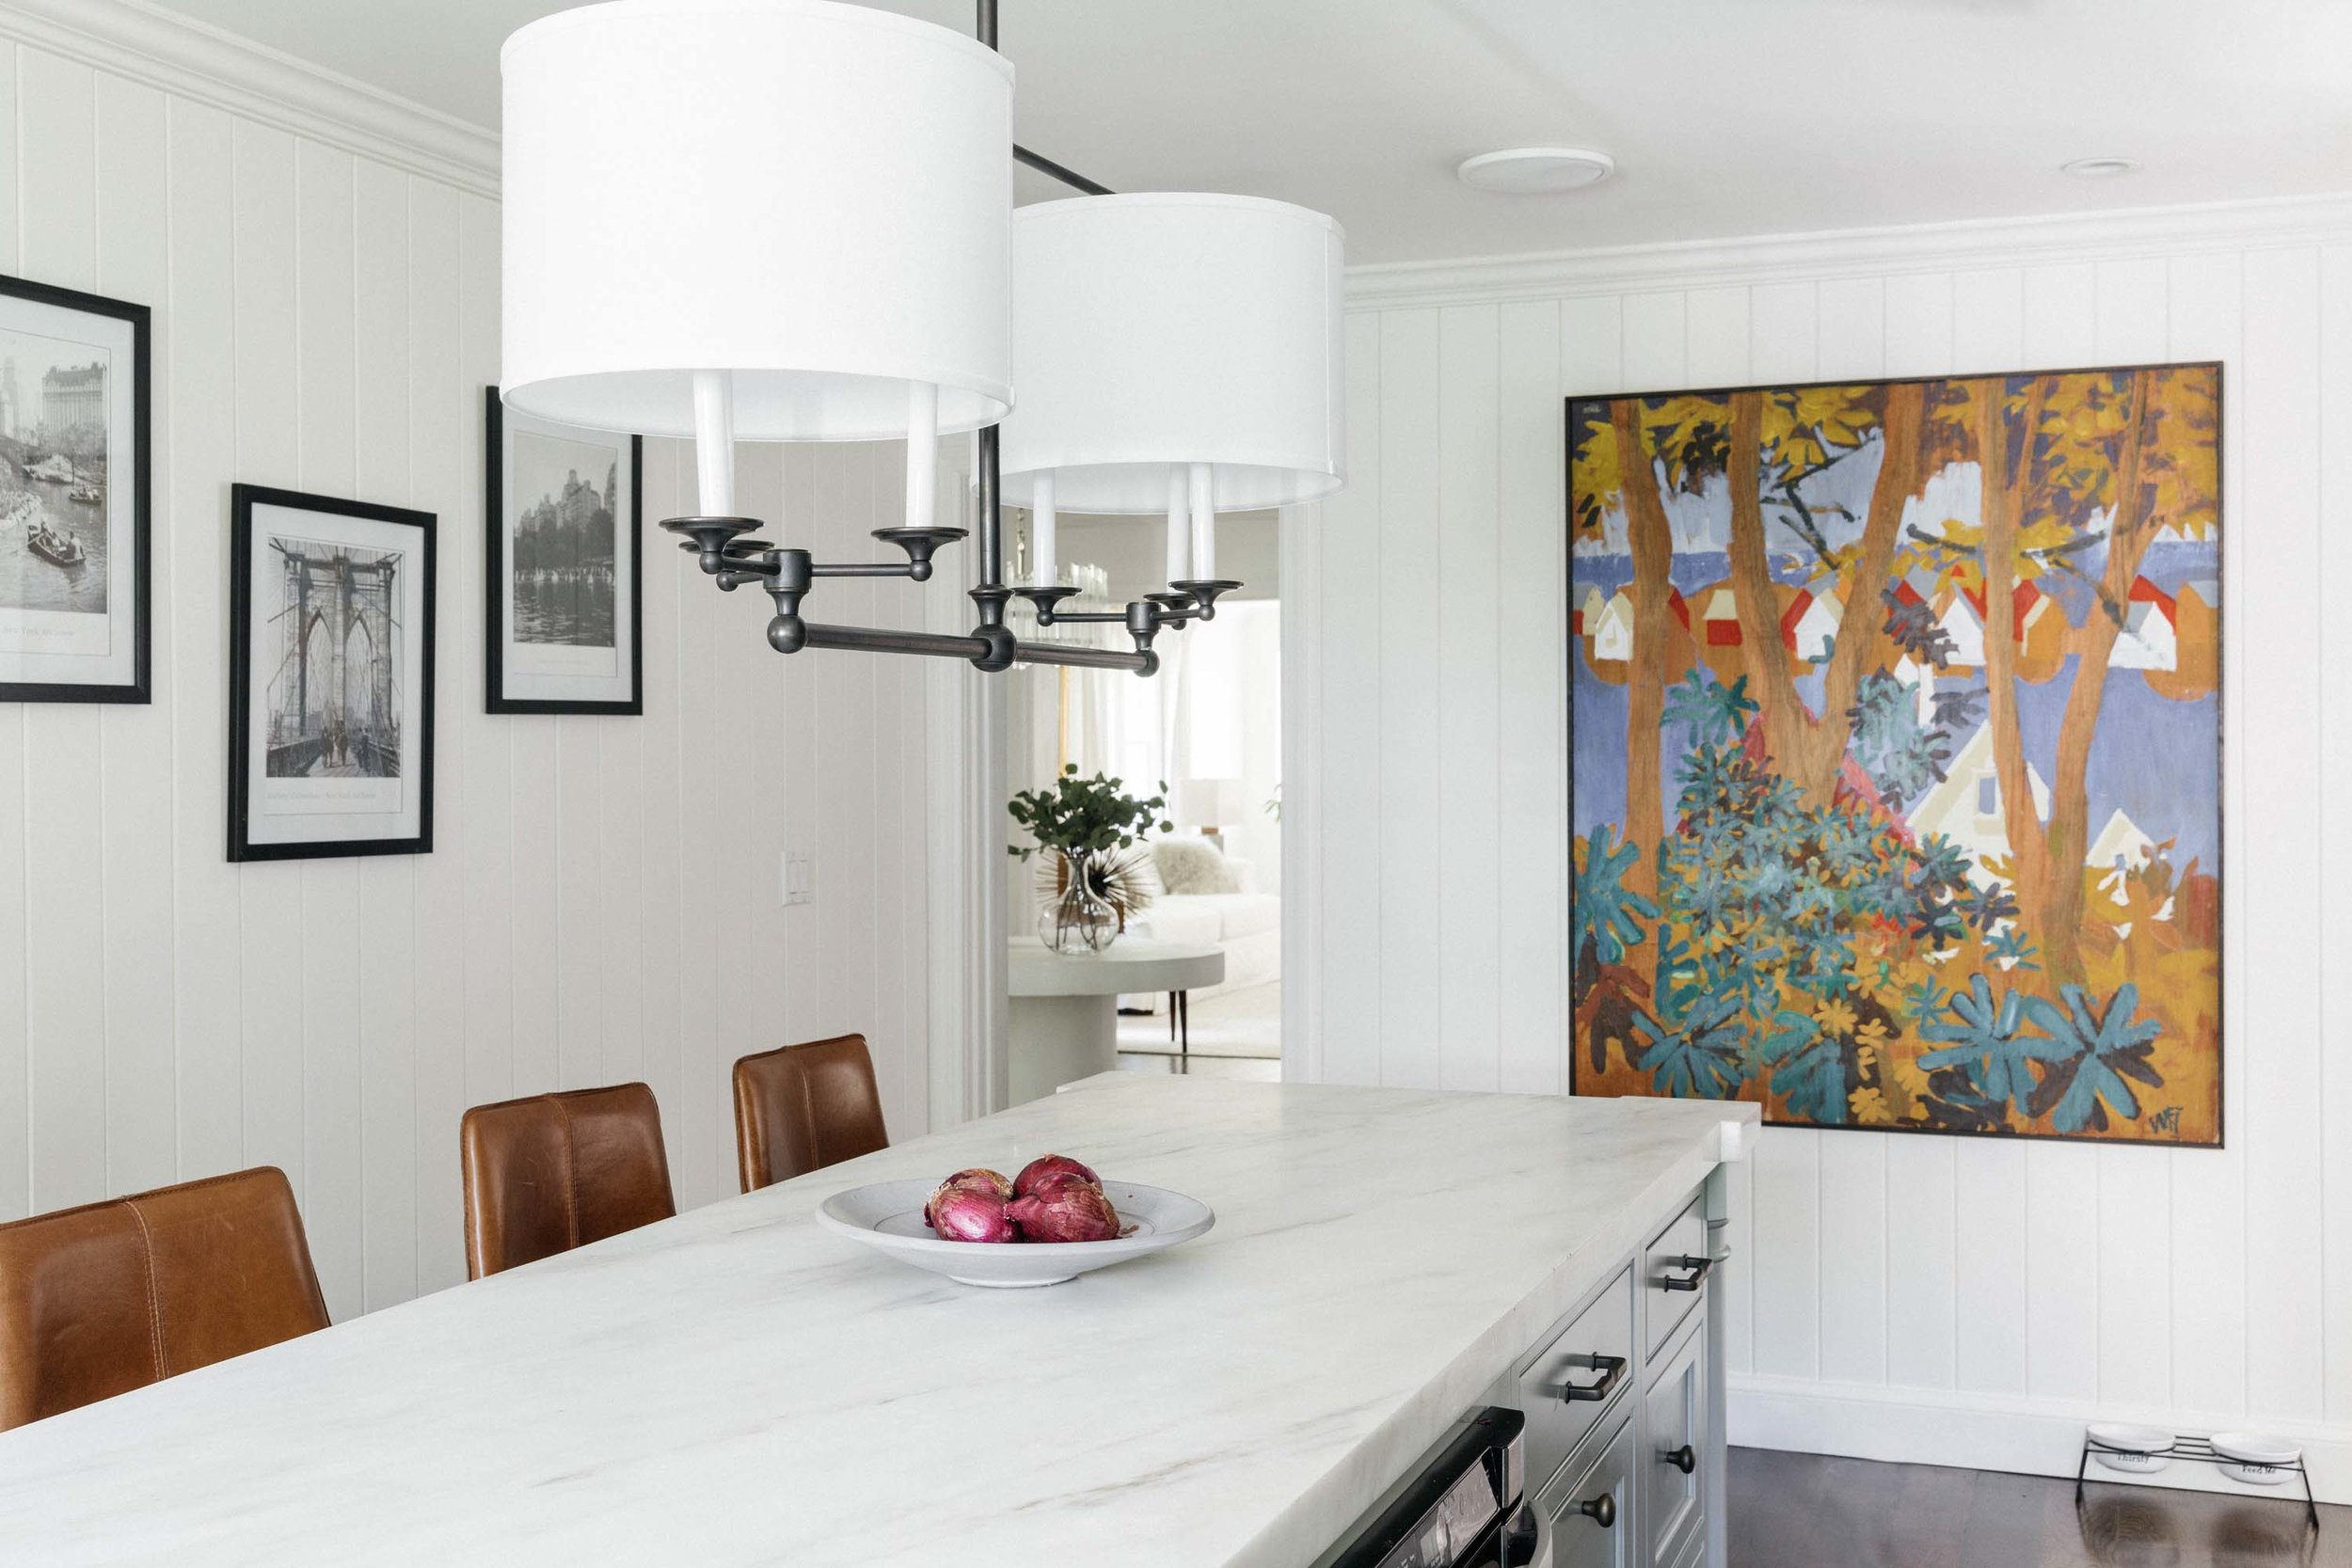 Kitchen with ceramic center island, frames and artwork on the wall